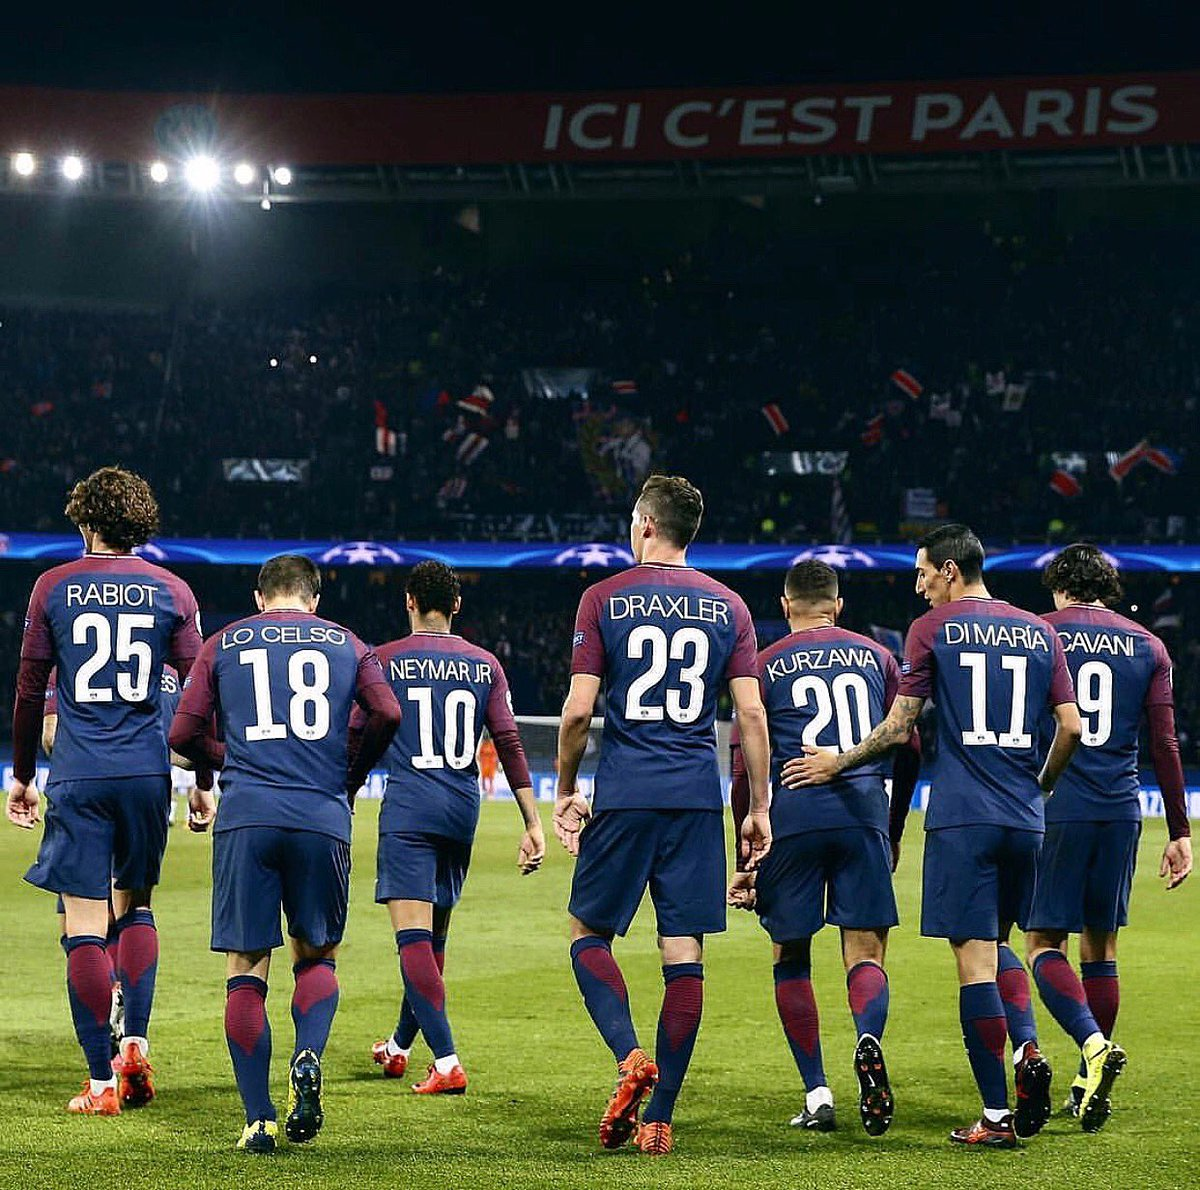 RT @LoCelsoGiovani: Let's go 2018 - Ici C'est Paris 🔴🔵 @PSG_inside https://t.co/3KE11um7dv